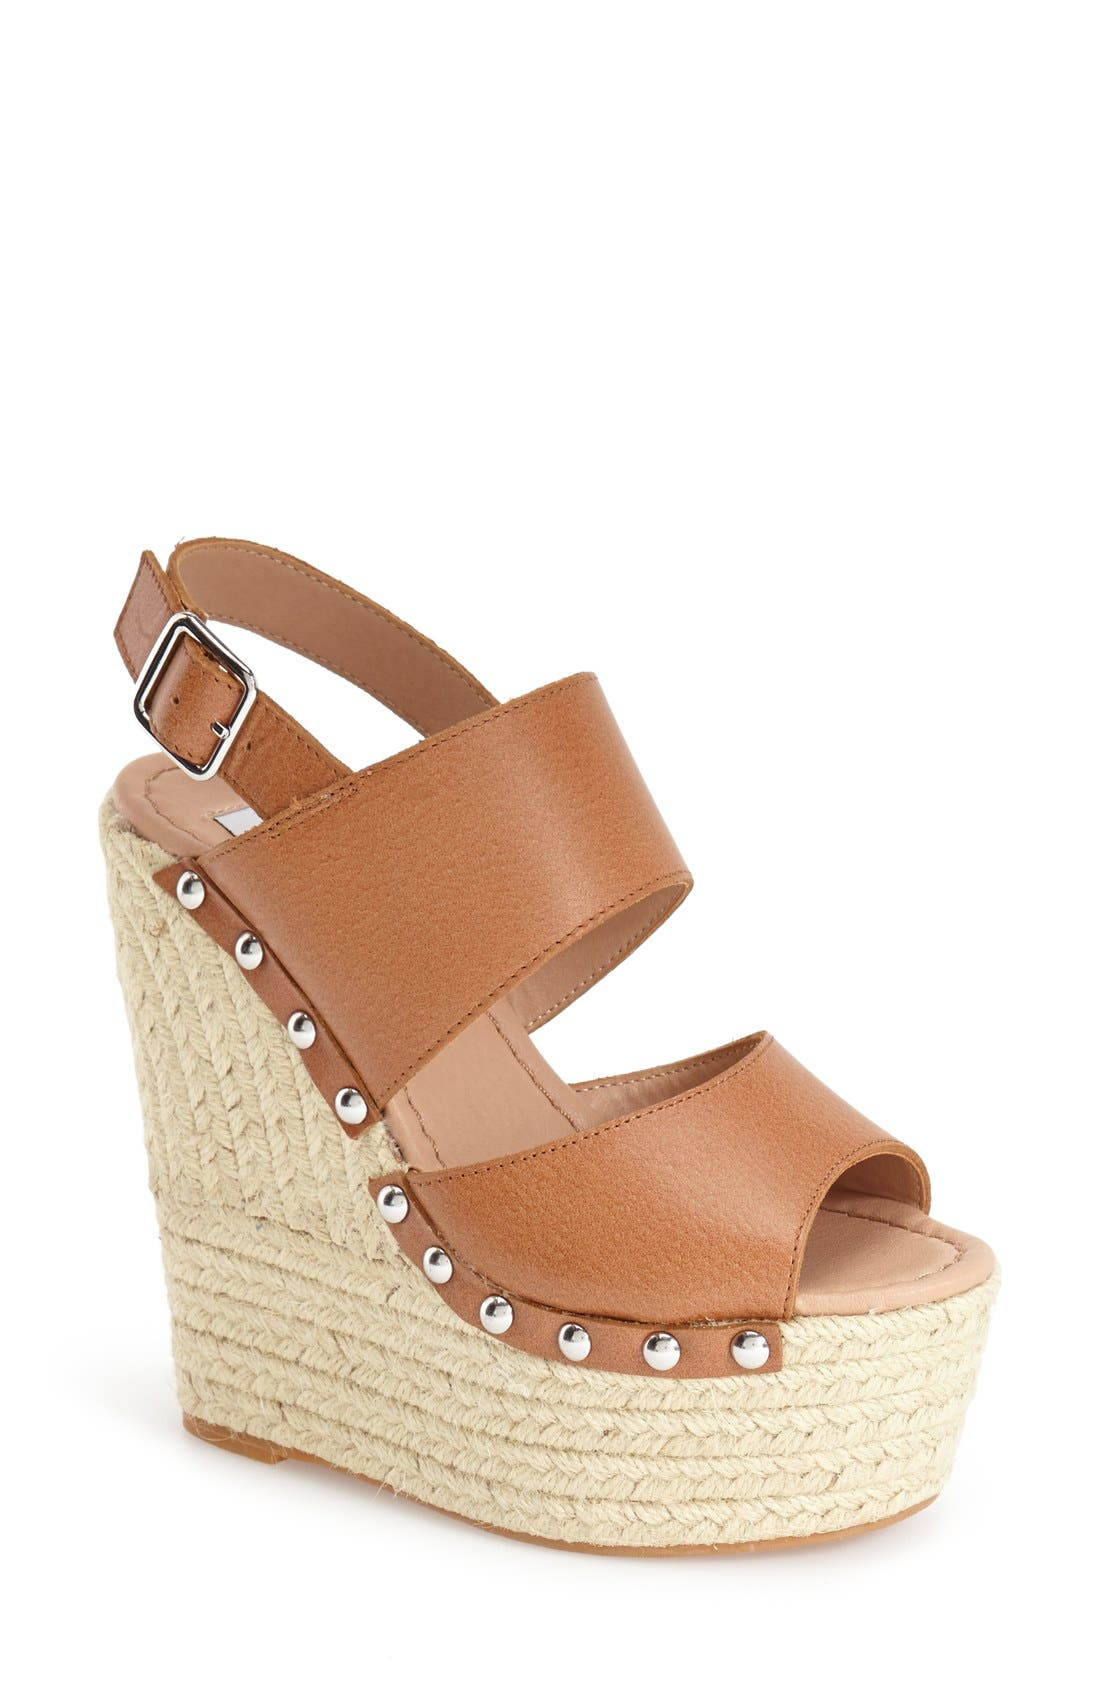 Alternate Image 1 Selected - Steve Madden 'Jummbo' Espadrille Wedge Sandal (Women)